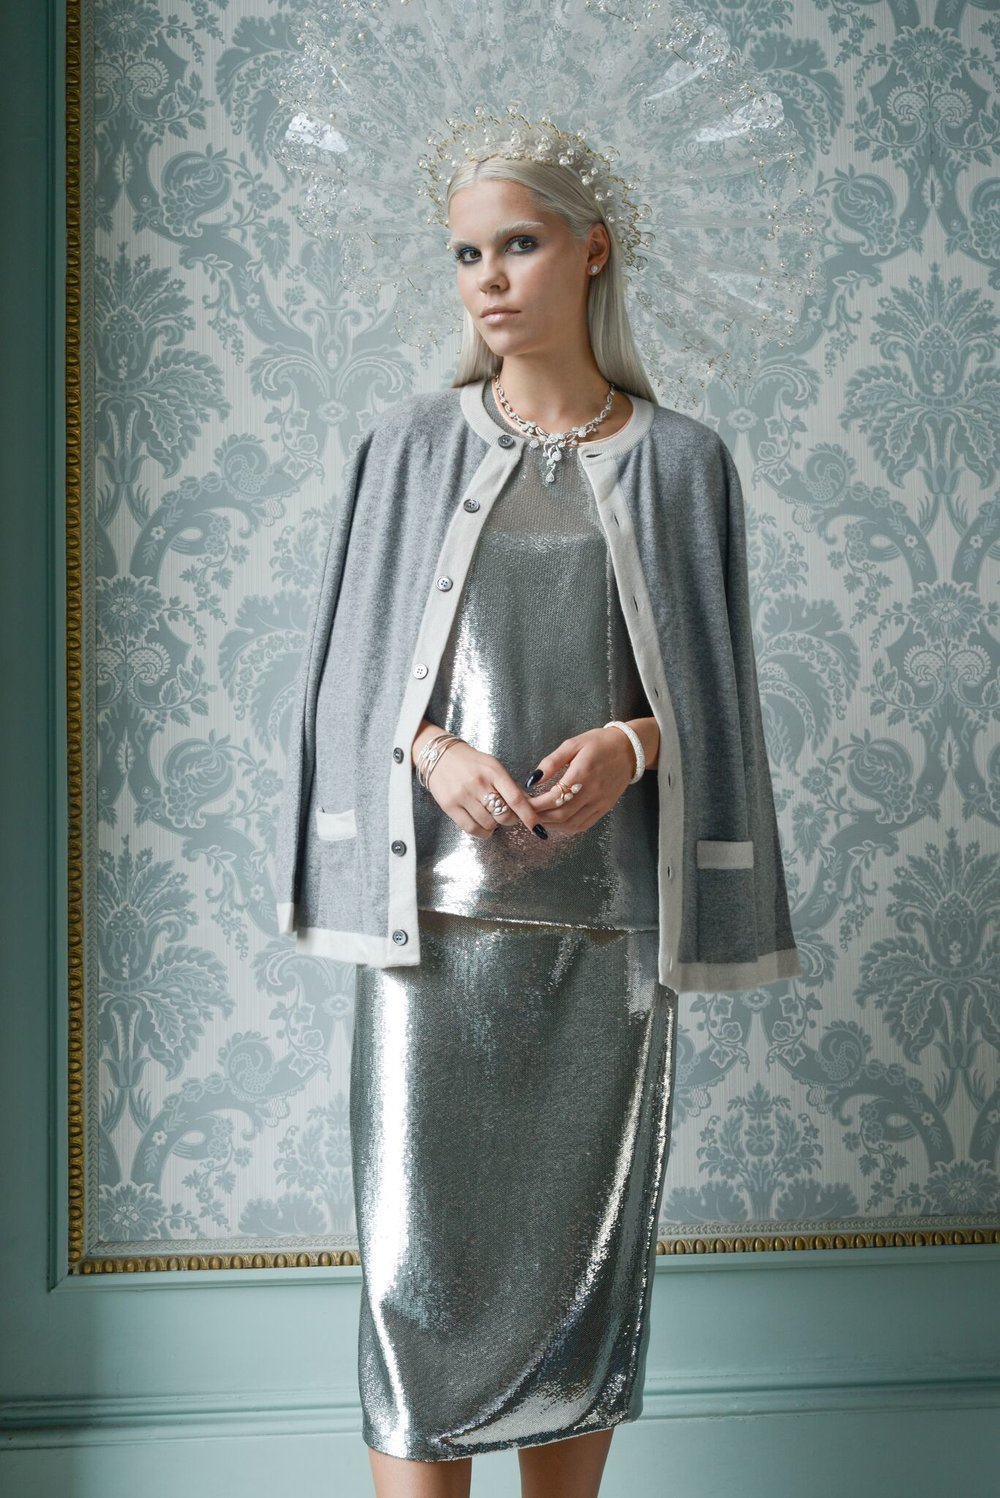 Nina wears: headpiece by  Sally Ann Provan , top & skirt DVF from  Jane Davidson , cardigan by Cross Cashmere, diamonds from  Rox